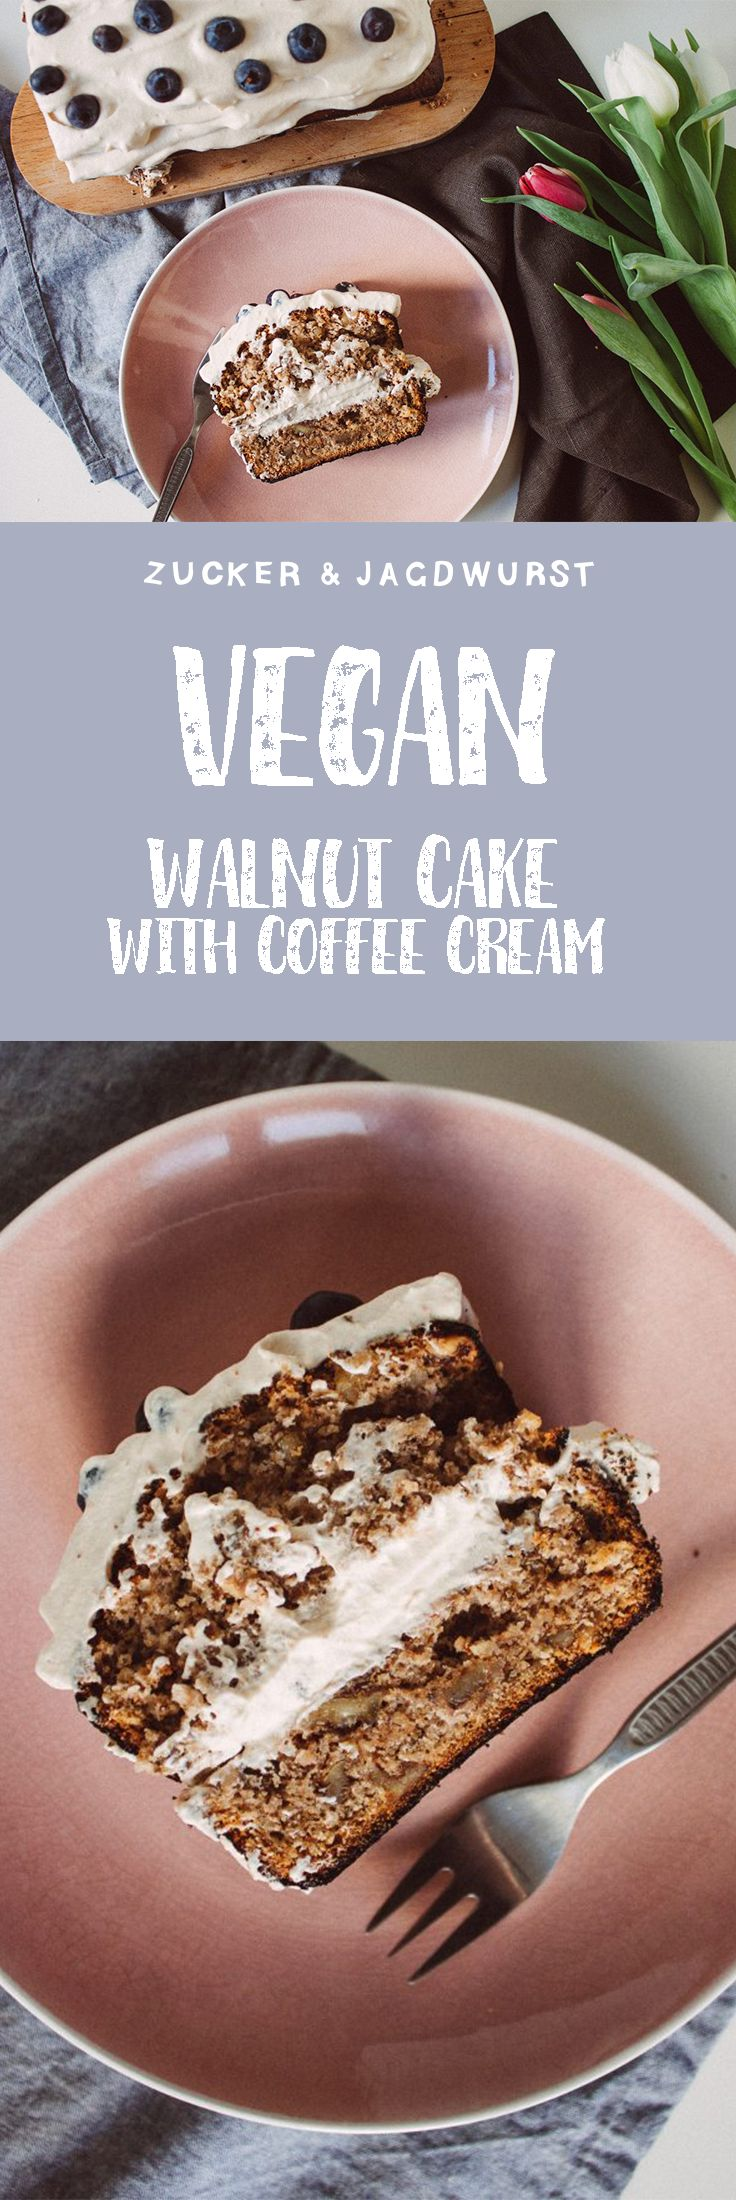 Vegan Walnut Cake with Coffee Cream